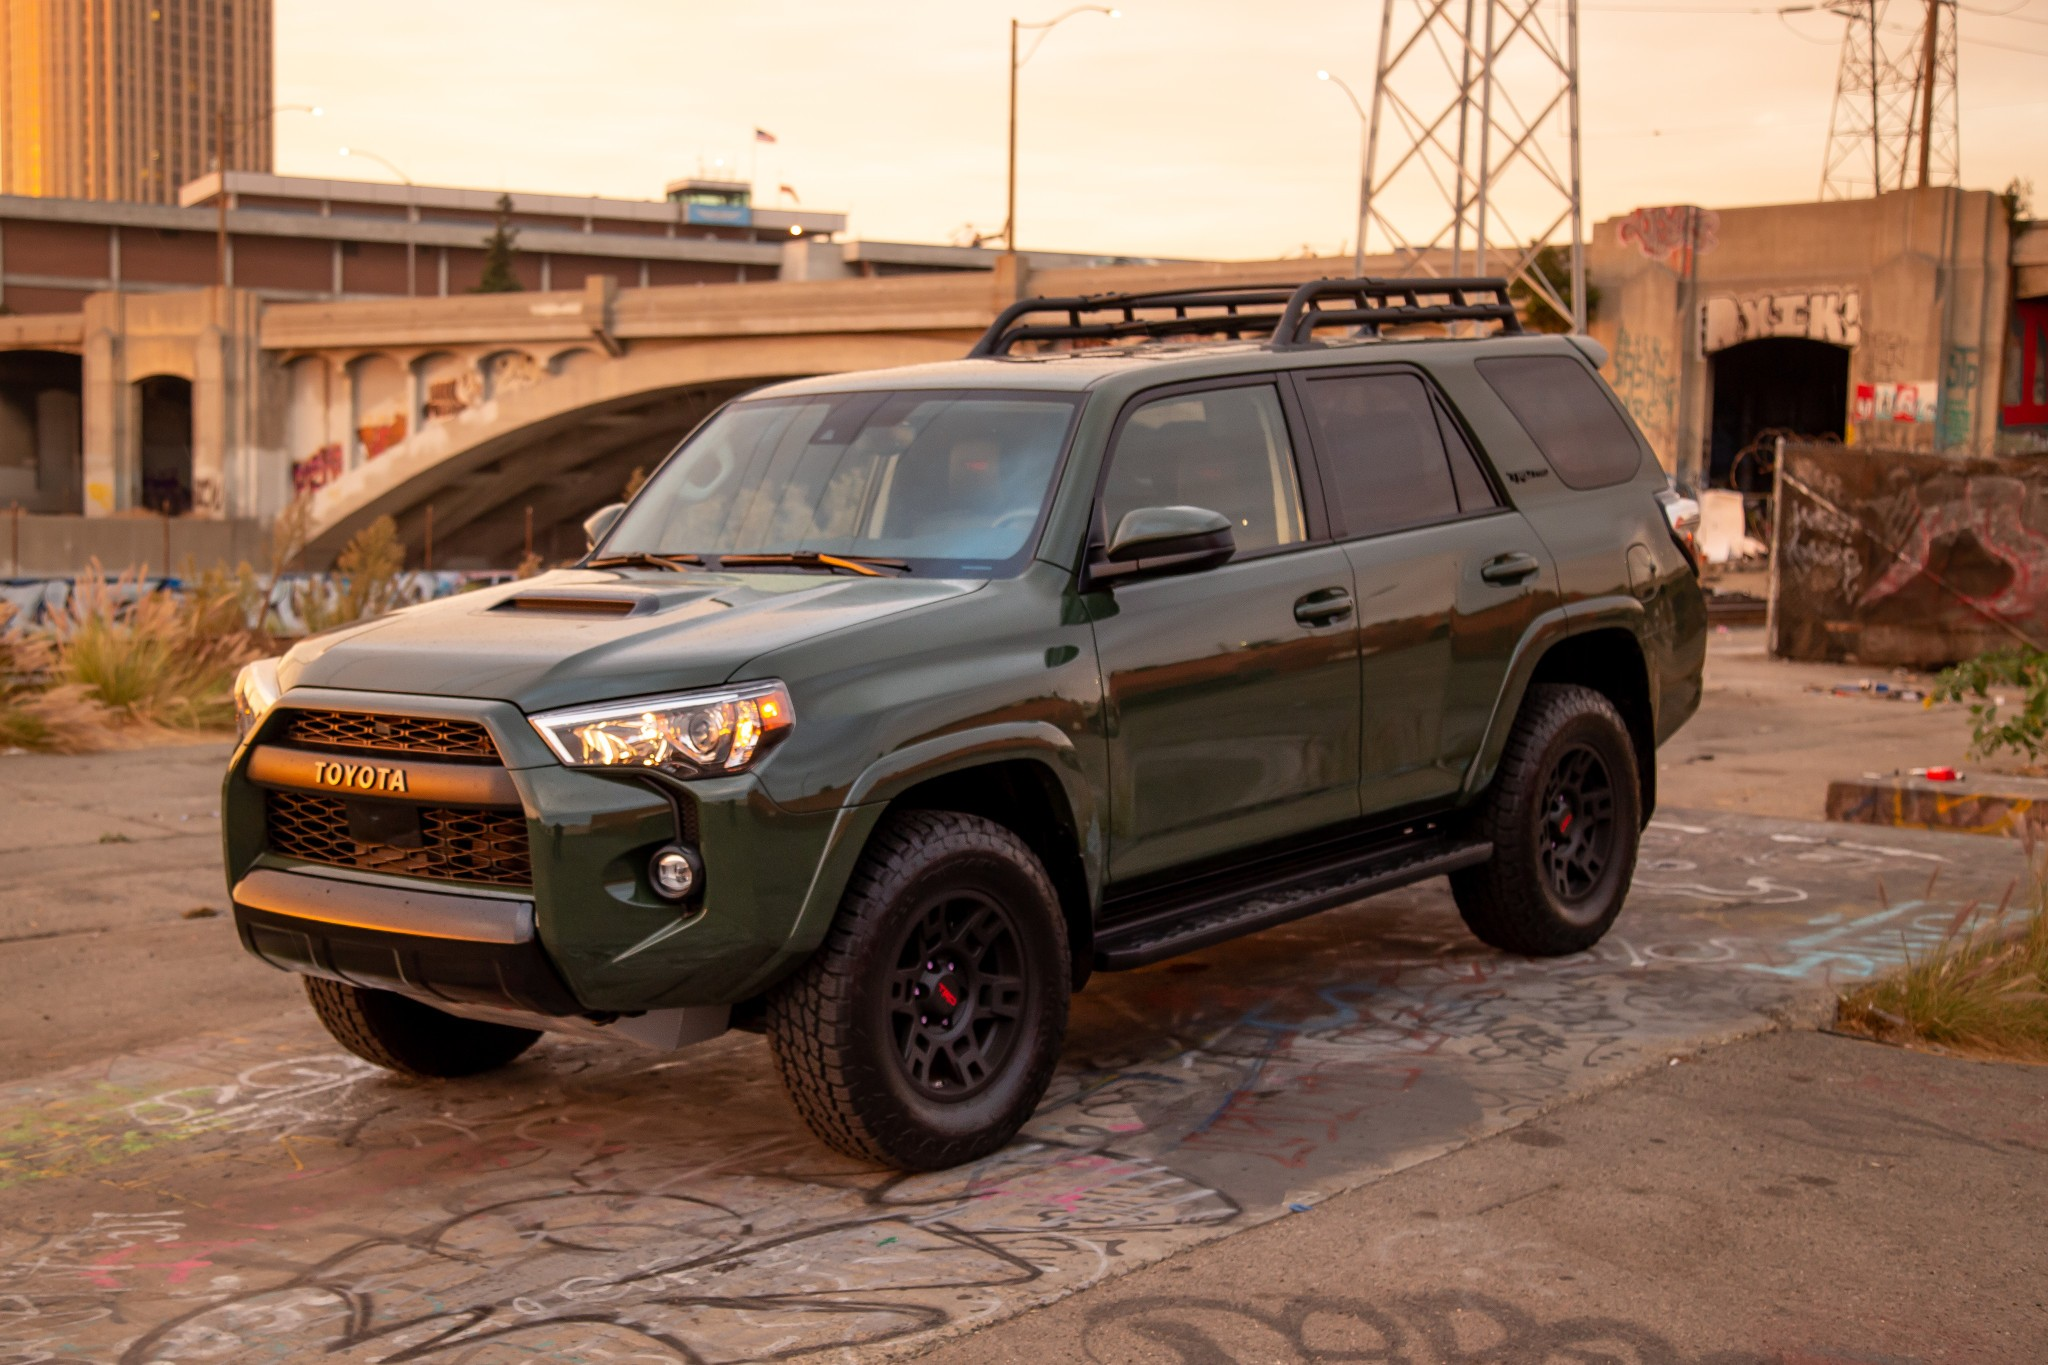 2020 Toyota 4Runner Review: At Home Where the Sidewalk Ends